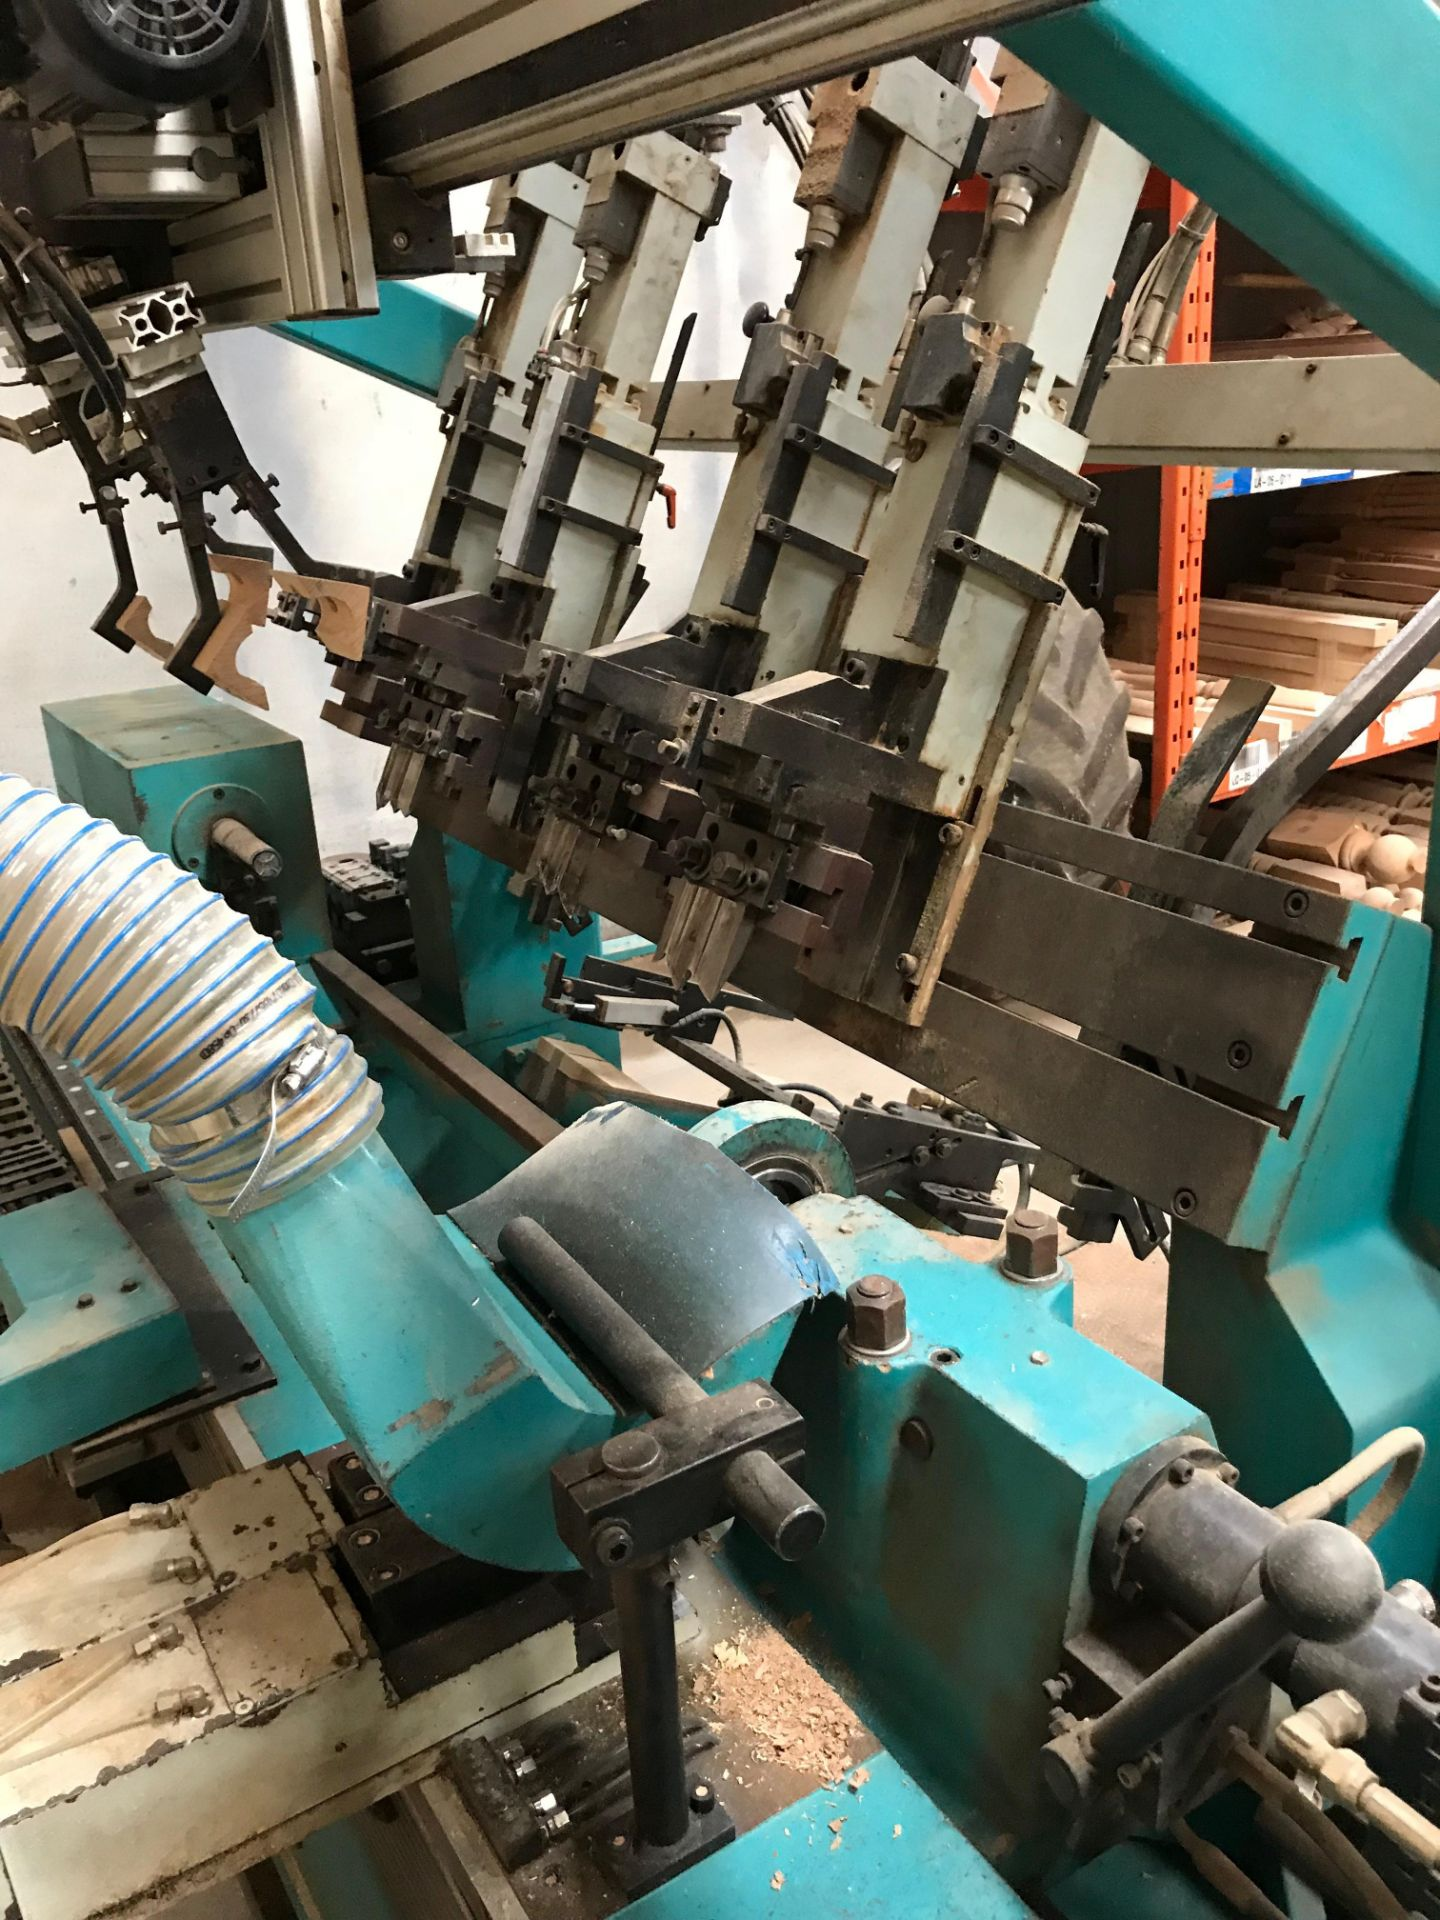 Lot 19 - * 1996 Intorex TZ-1200 Turning Centre with Workpiece Magazine; 4 X back & 2 X front knife